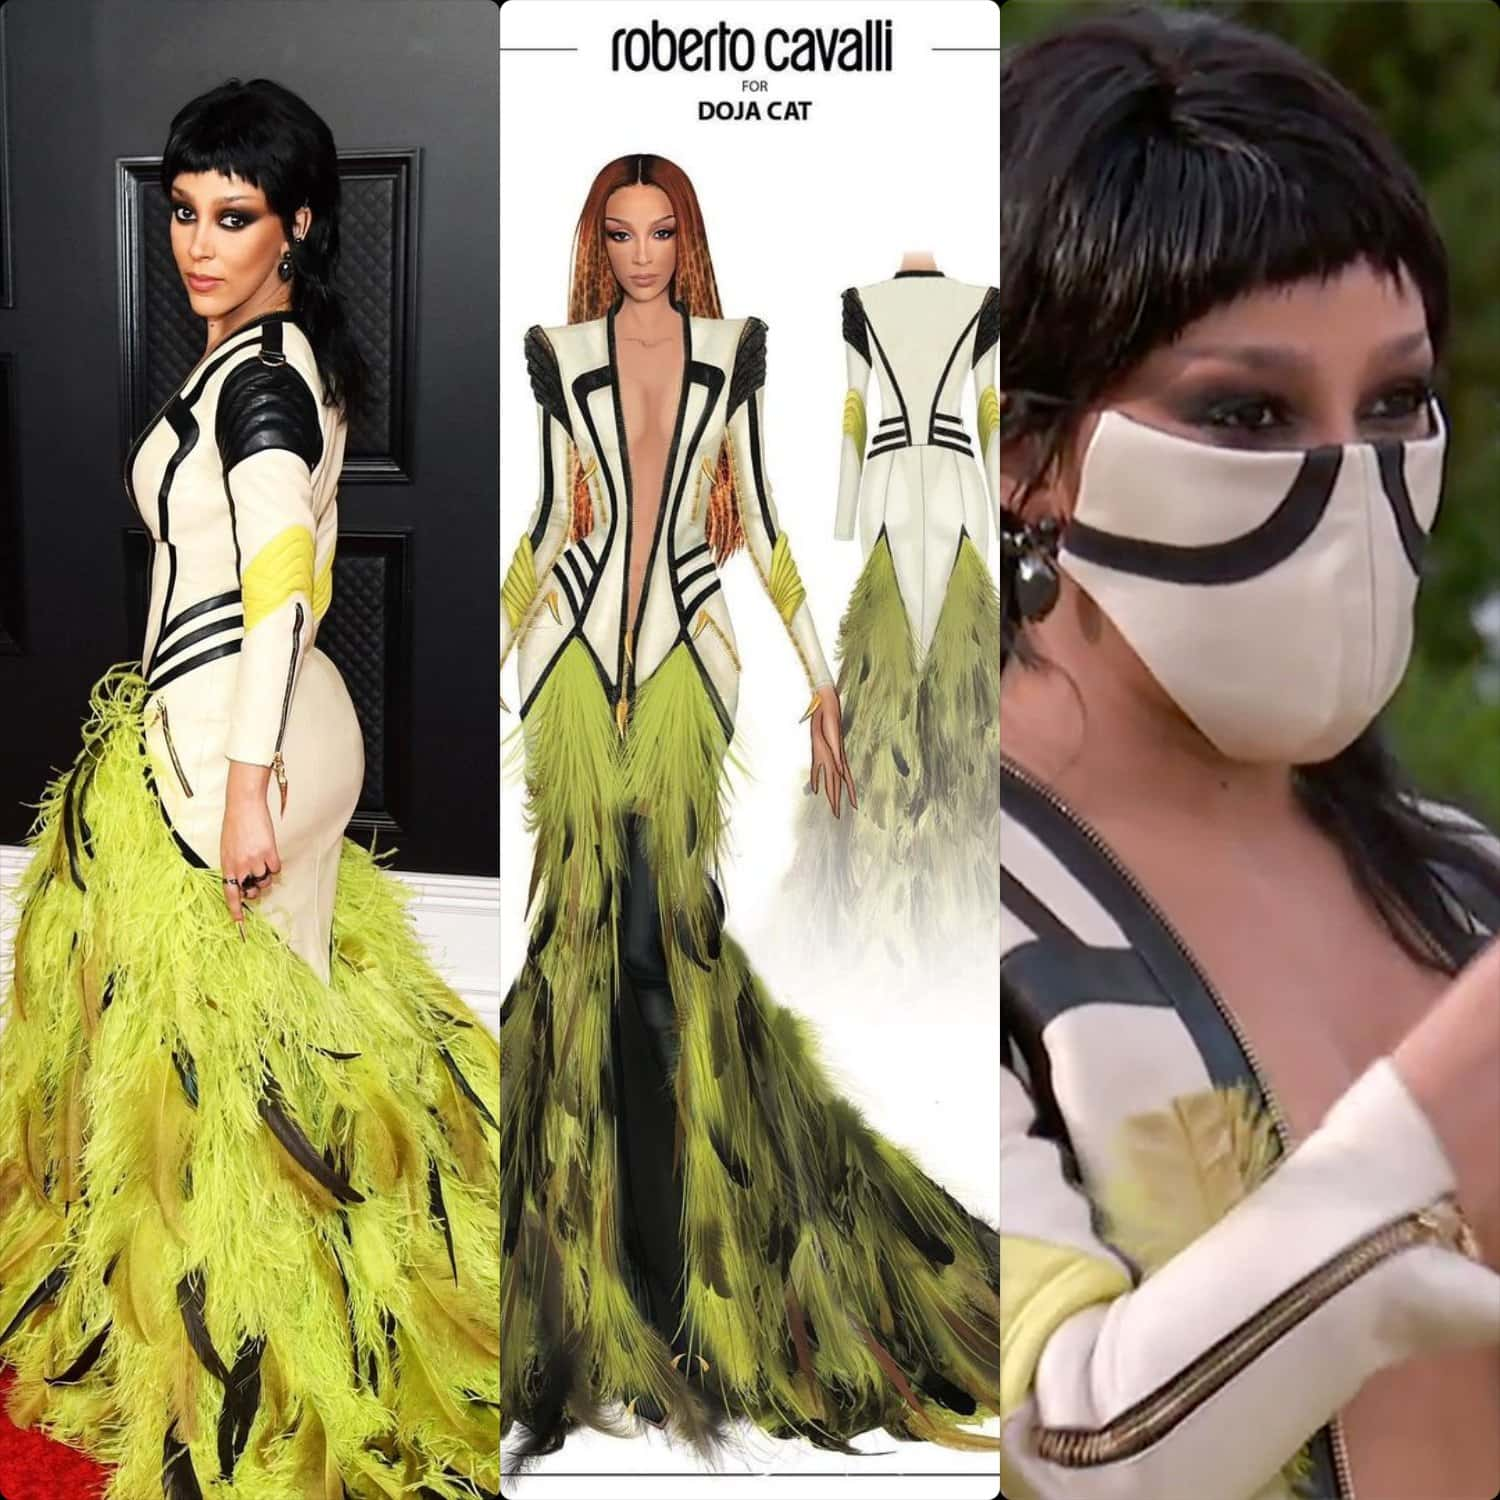 Doja Cat in Roberto Cavalli dress designed by Fausto Puglisi Grammy Awards 2021 by RUNWAY MAGAZINE